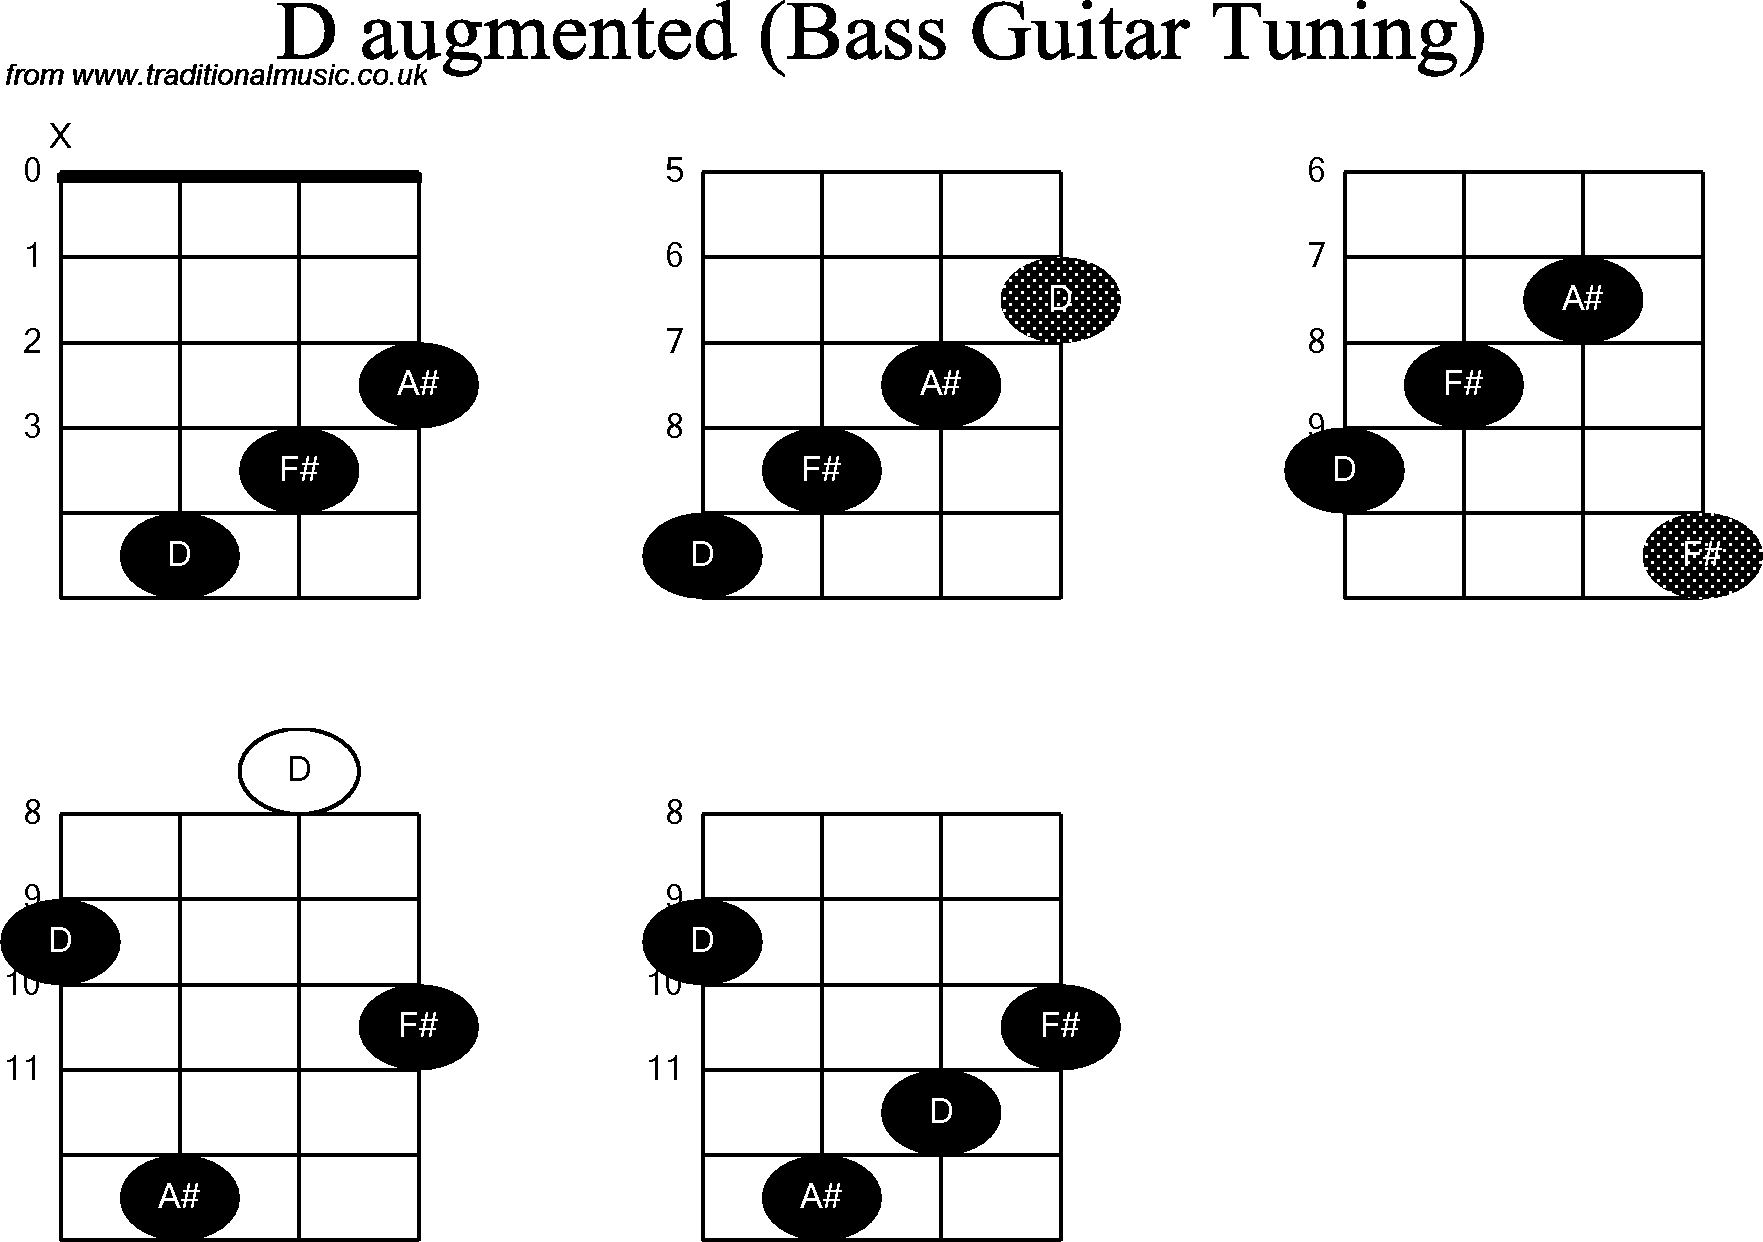 Bass Guitar Chord Diagrams For D Augmented